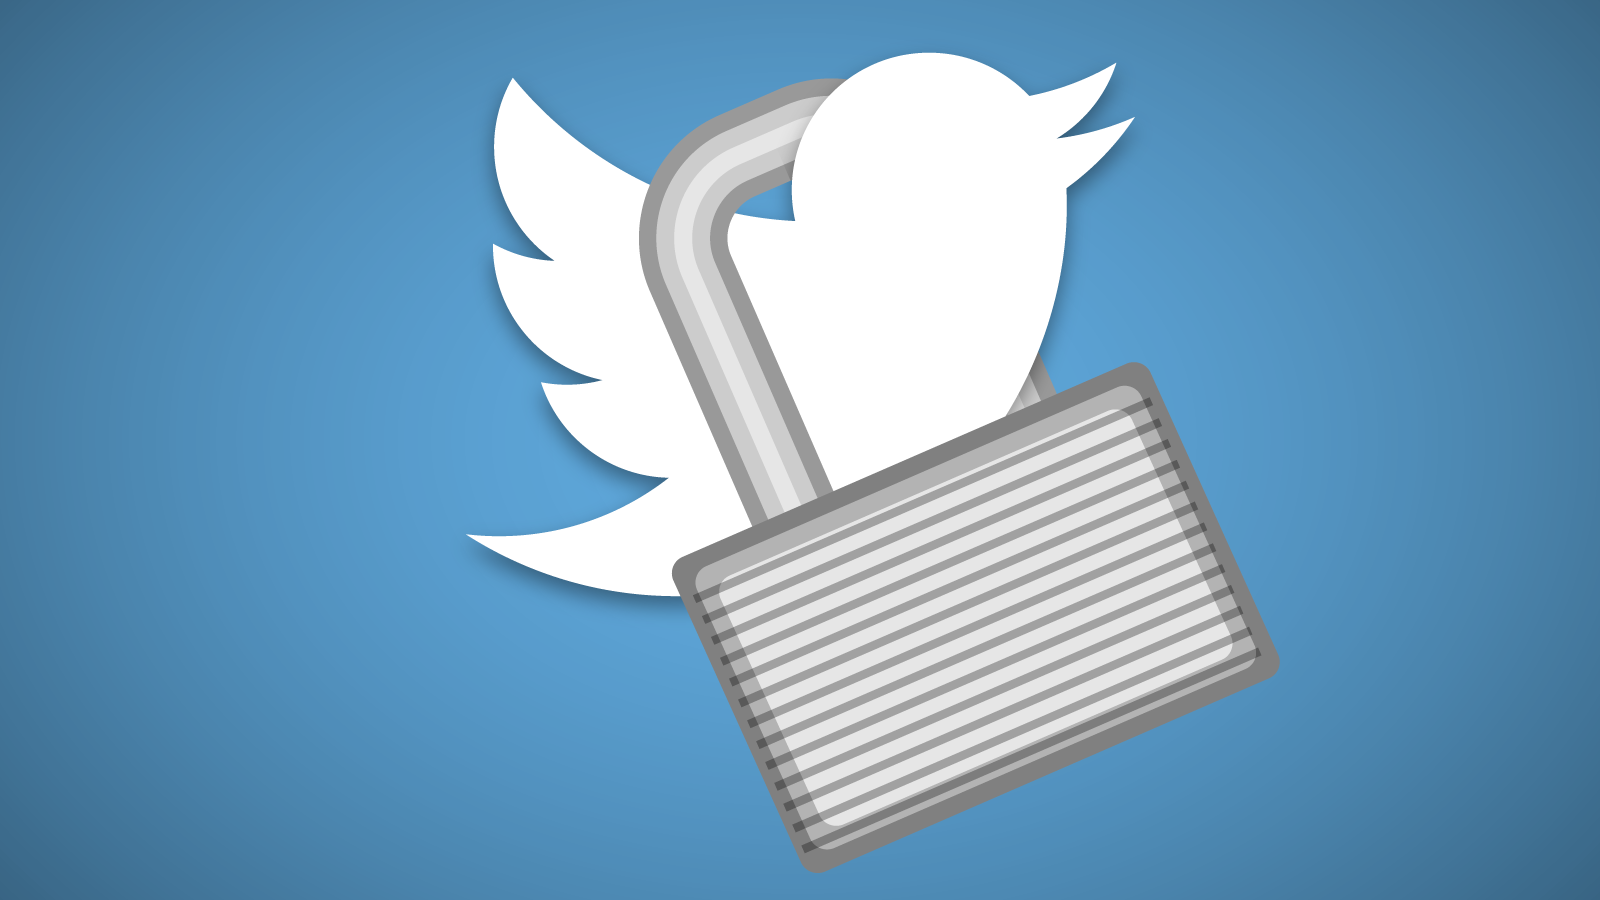 Whisper it - encrypted direct messages might be coming to Twitter